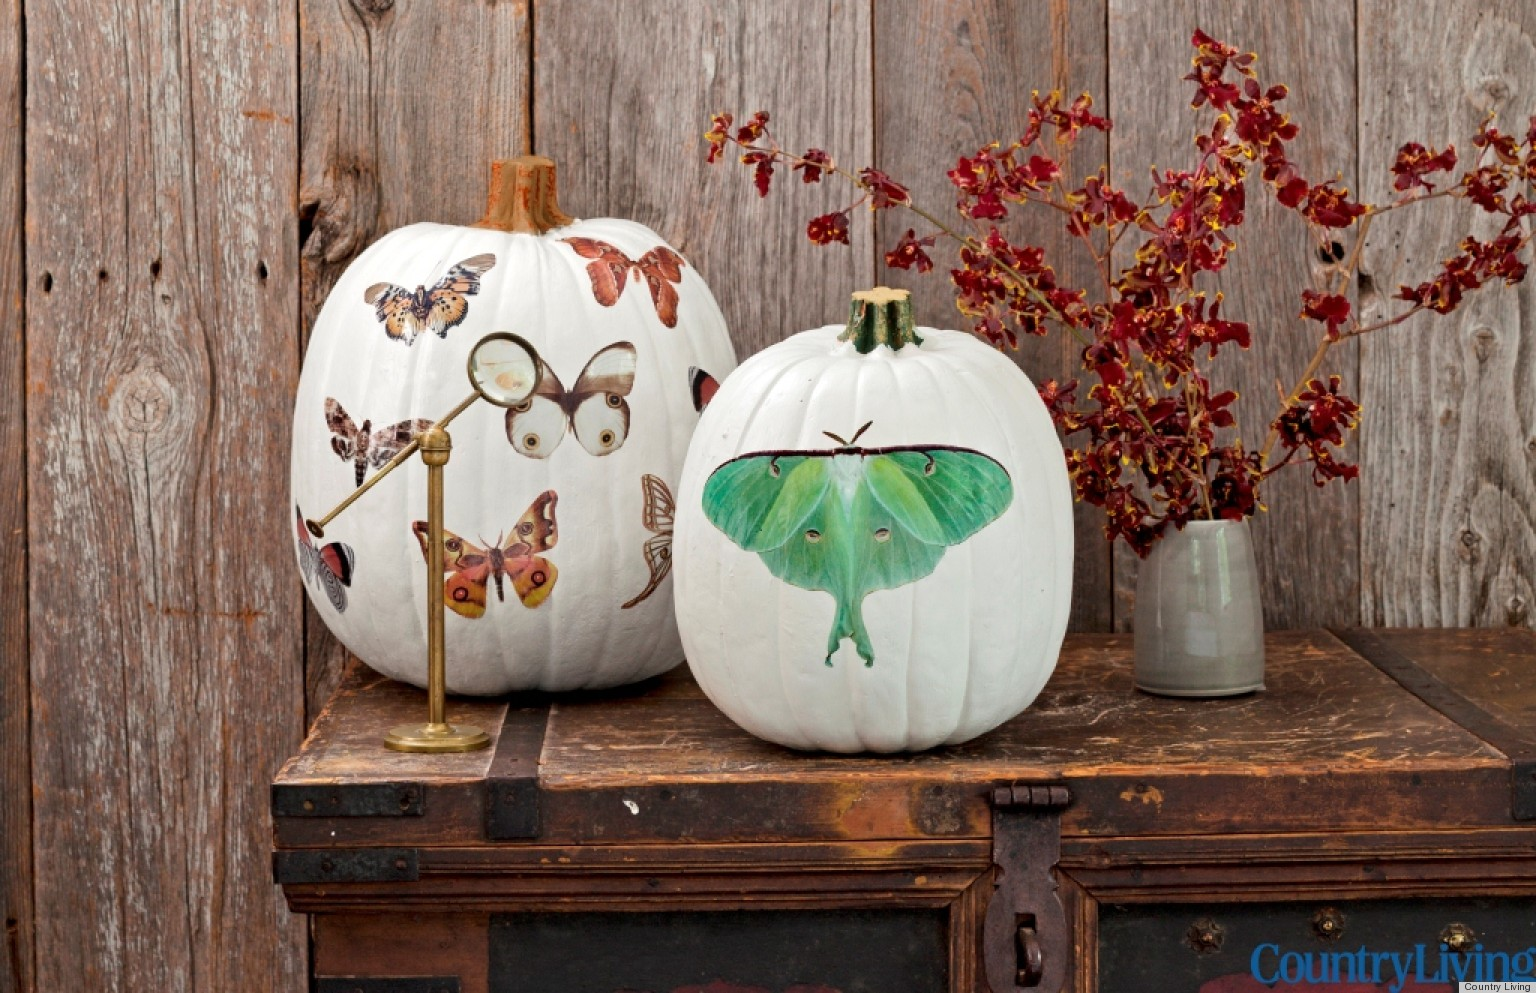 Simple Halloween Decor Part - 21: Halloween Decorations: Moth Decal Pumpkins From Country Living | HuffPost